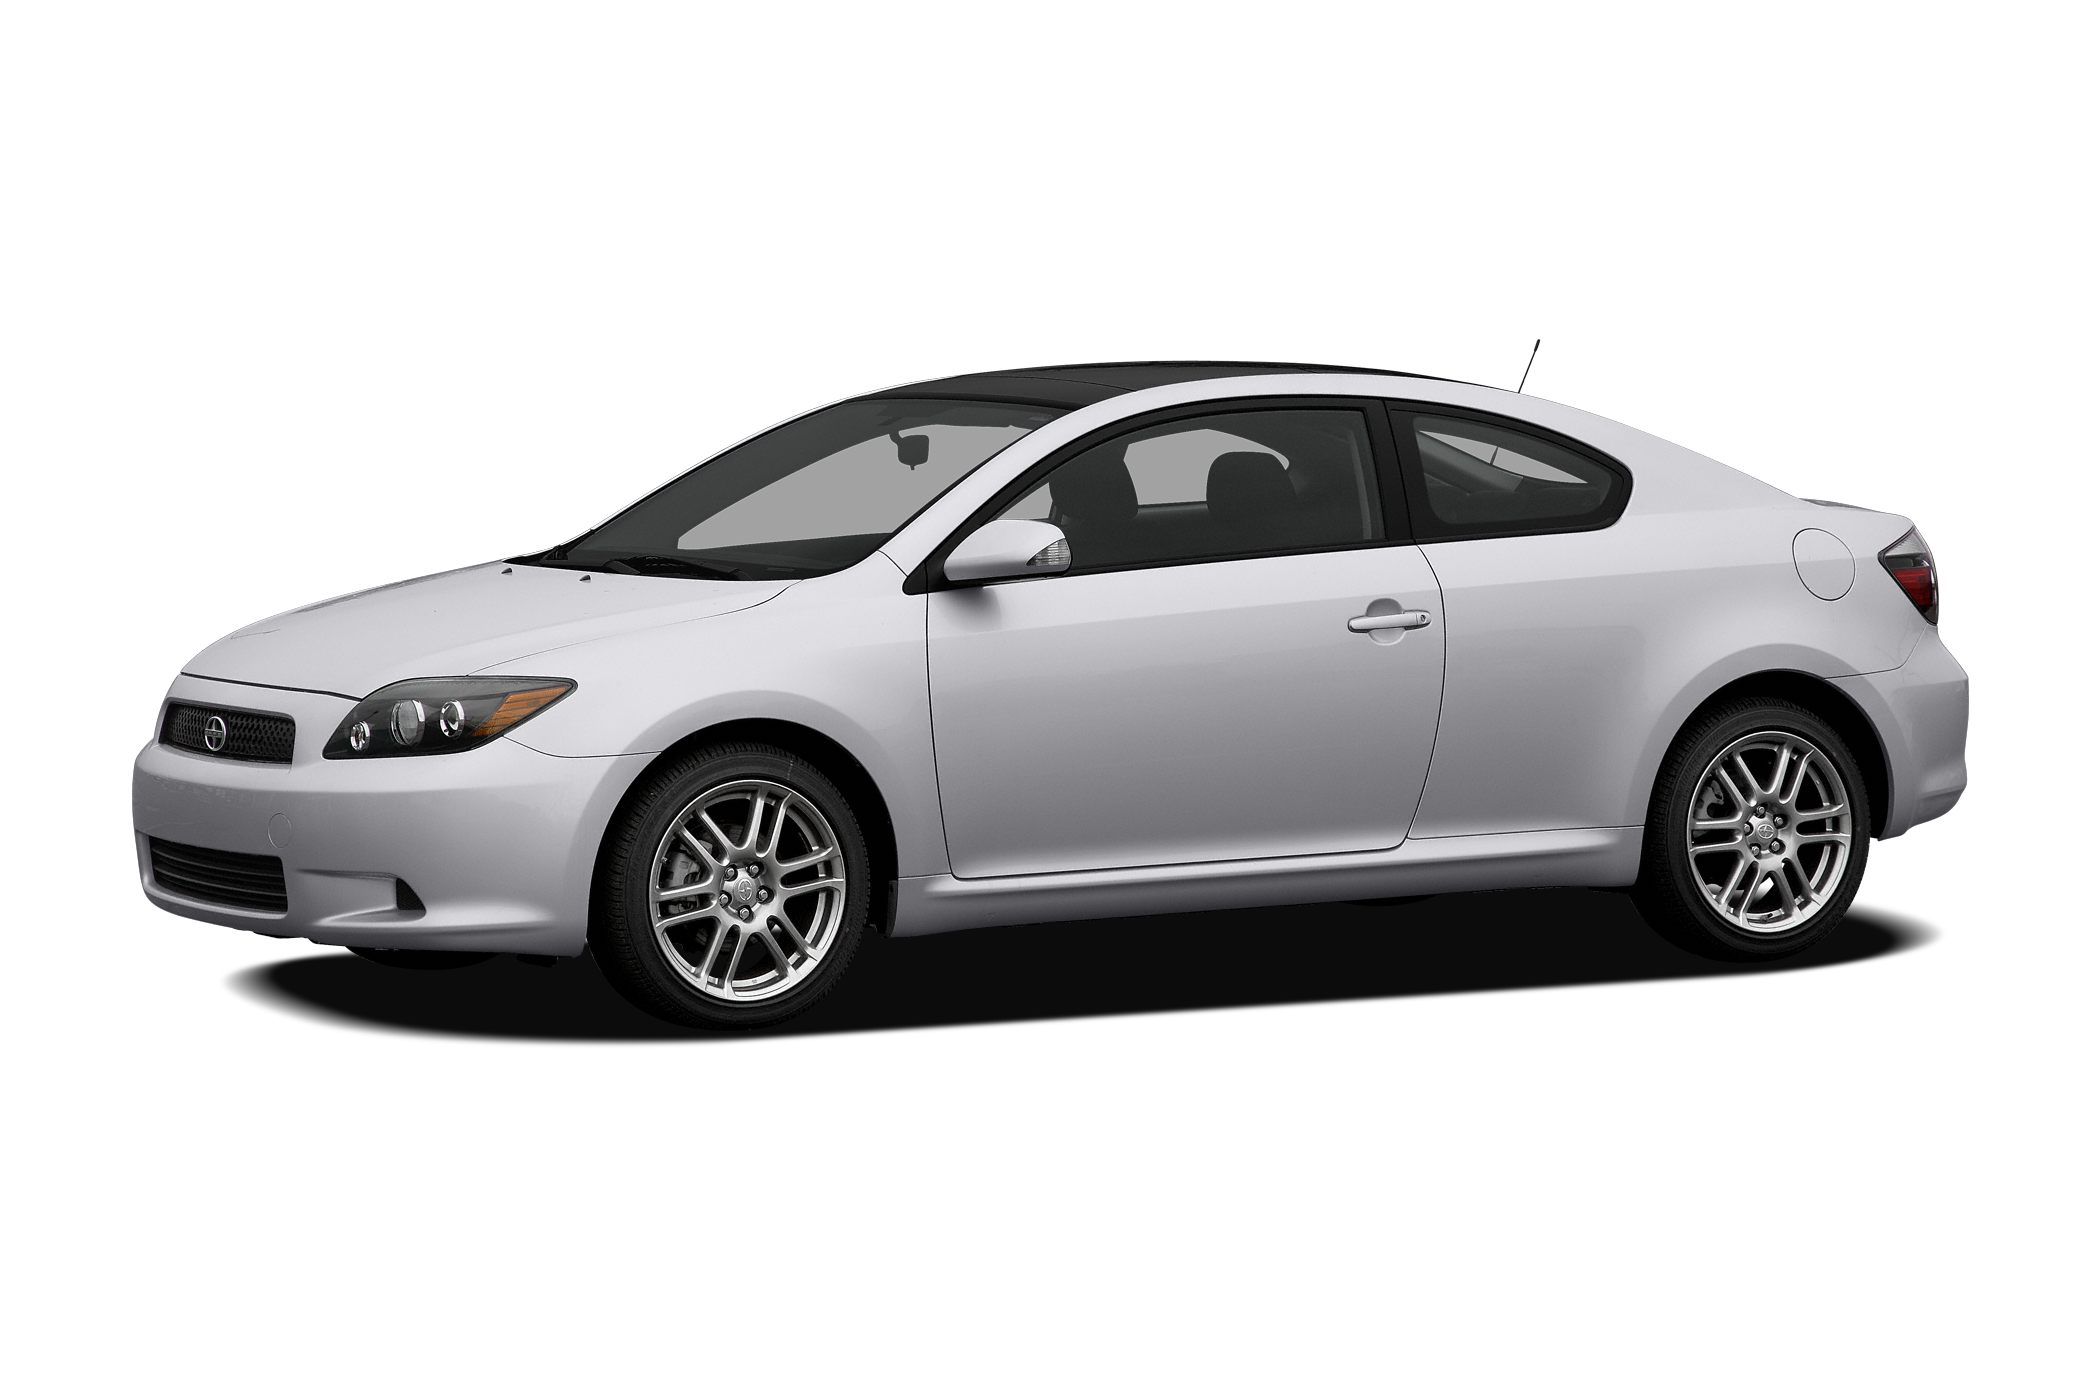 2008 Scion TC Coupe for sale in Lafayette for $9,950 with 78,449 miles